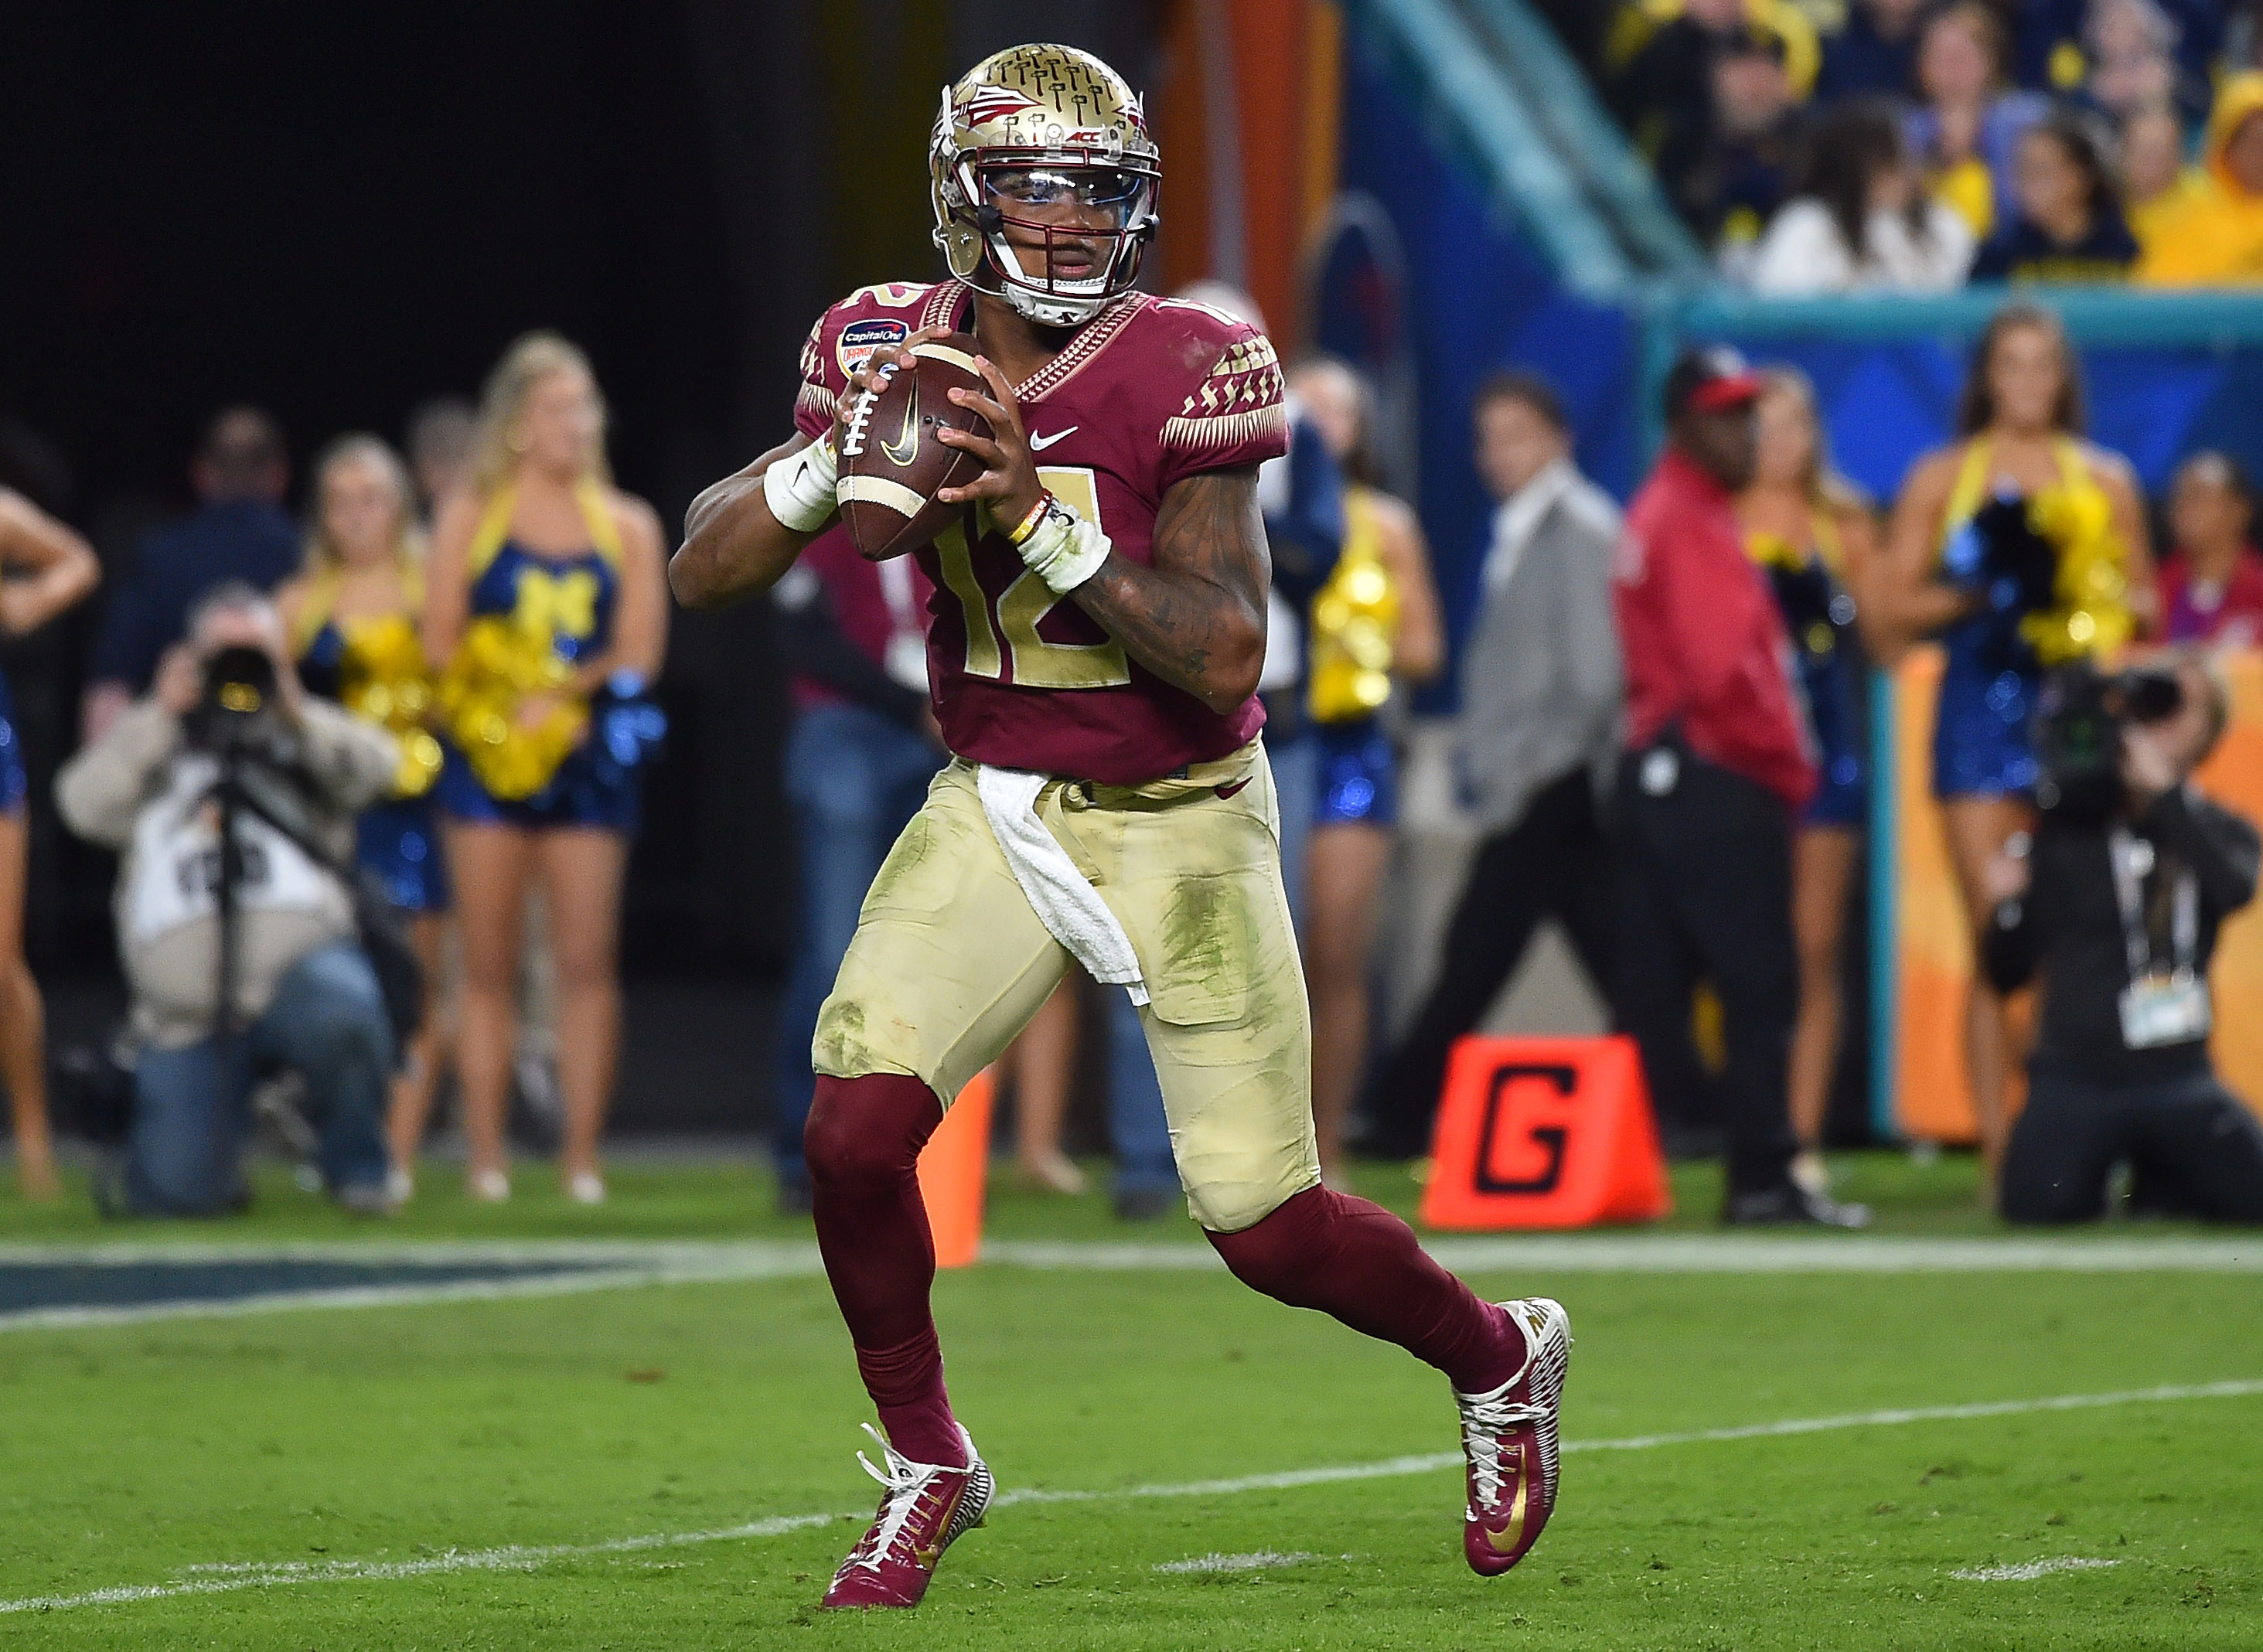 FSU QB Deondre Francois reportedly investigated for domestic violence